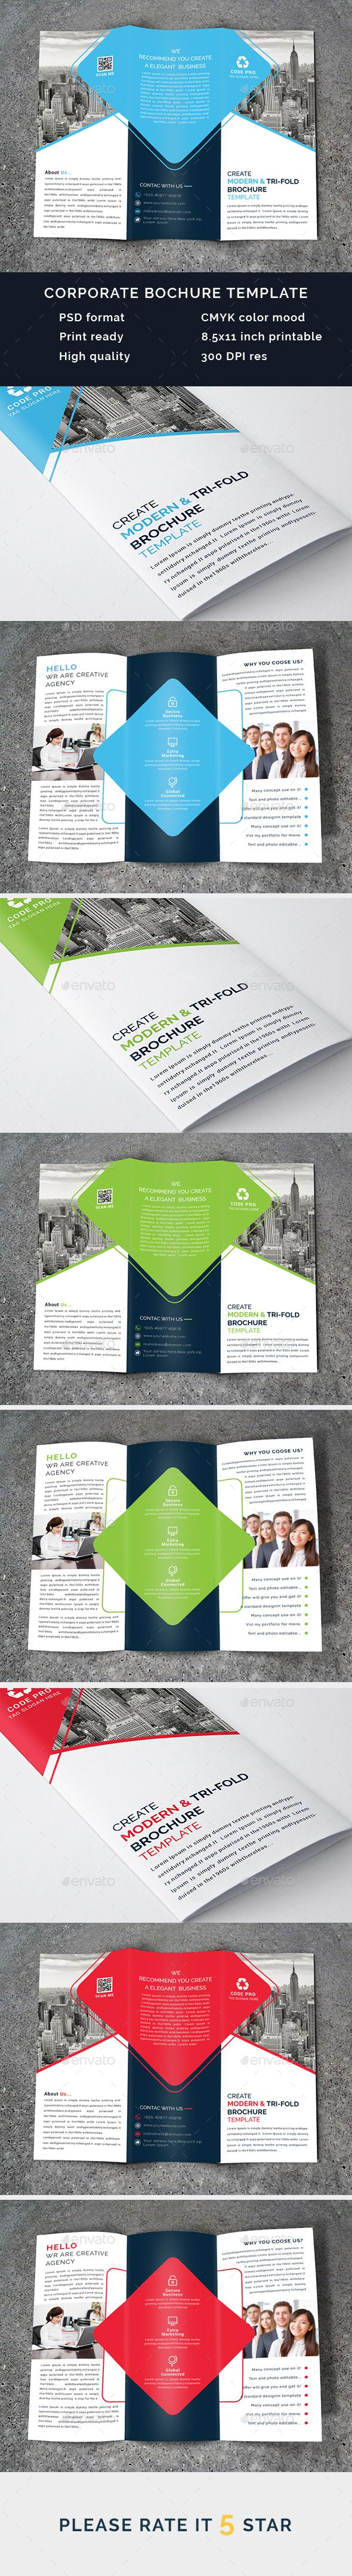 Corporate Brochure Template PSD. Download here: https://graphicriver.net/item/corporate-brochure/17332089?ref=ksioks